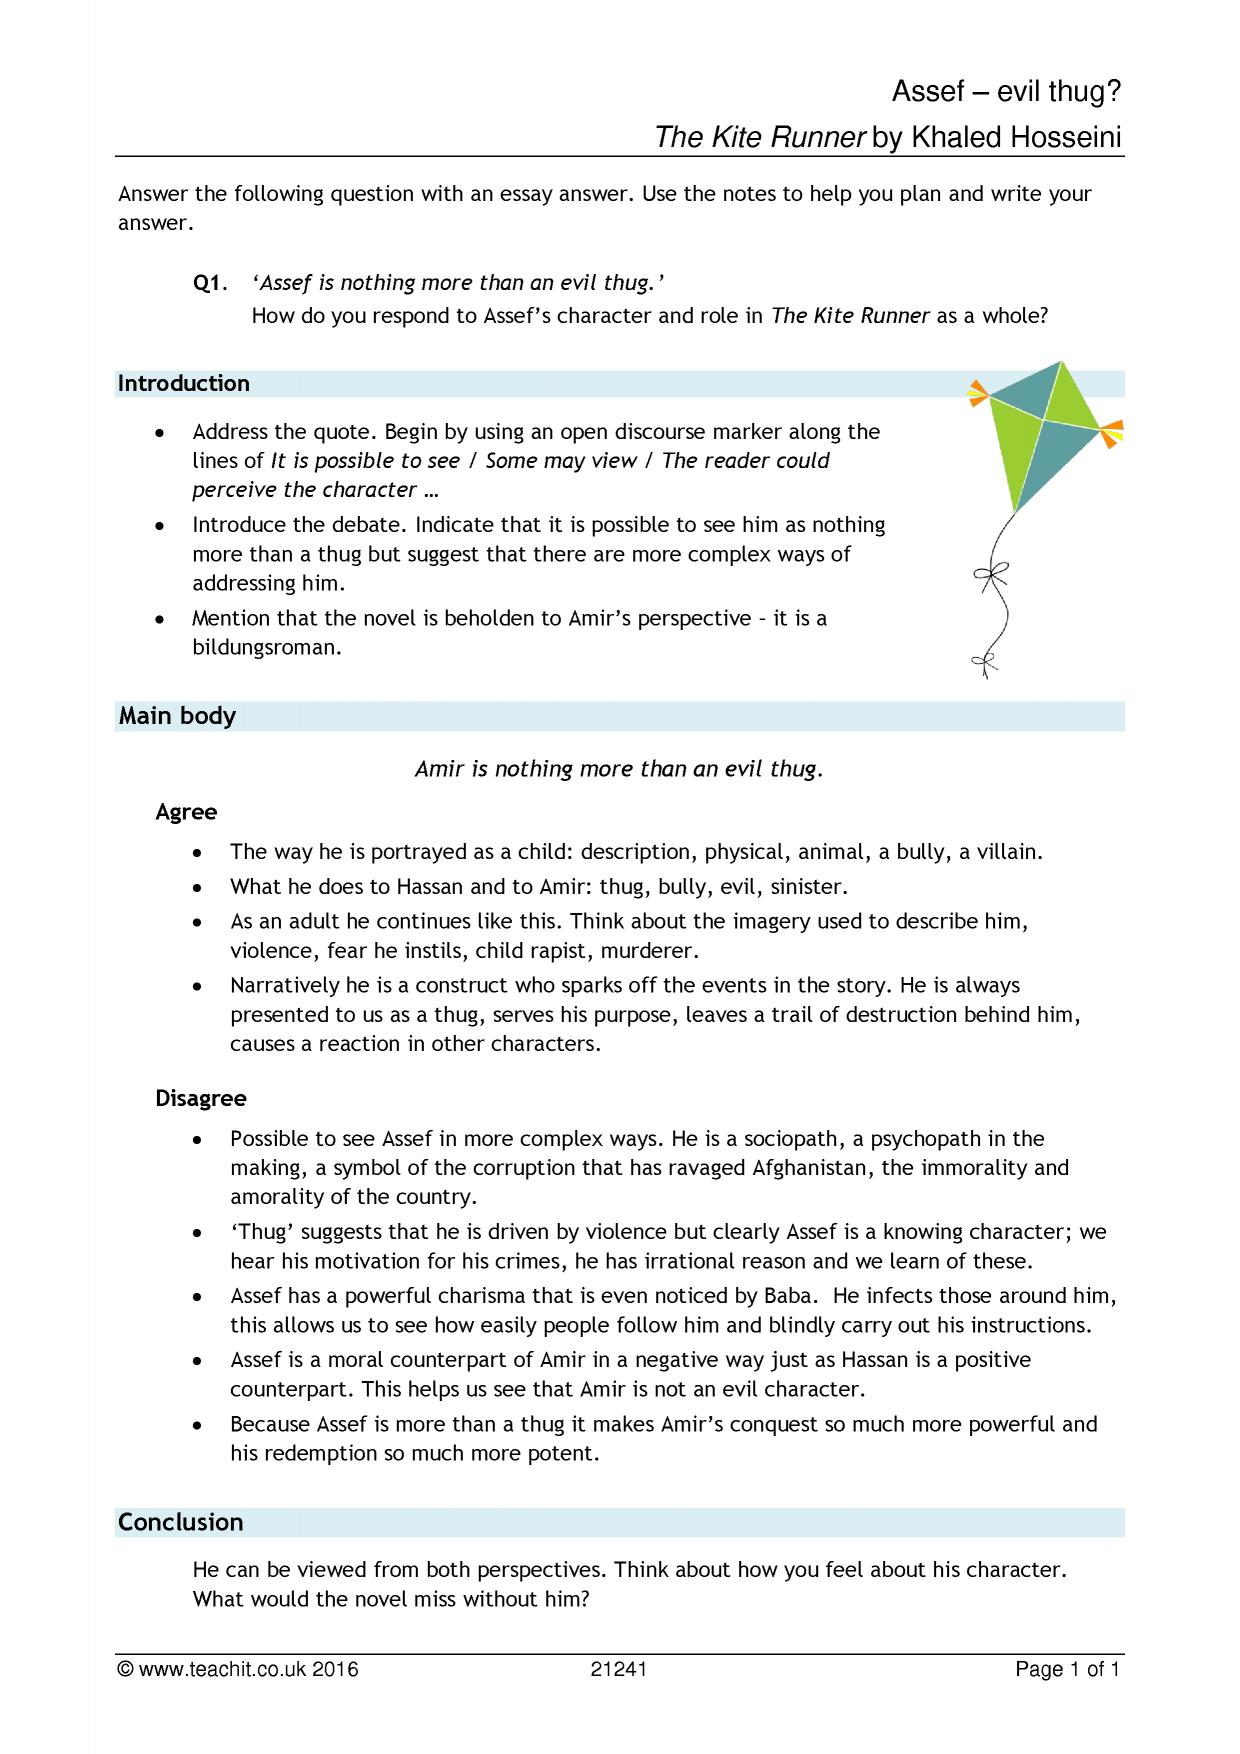 kite runner study guide questions and answers